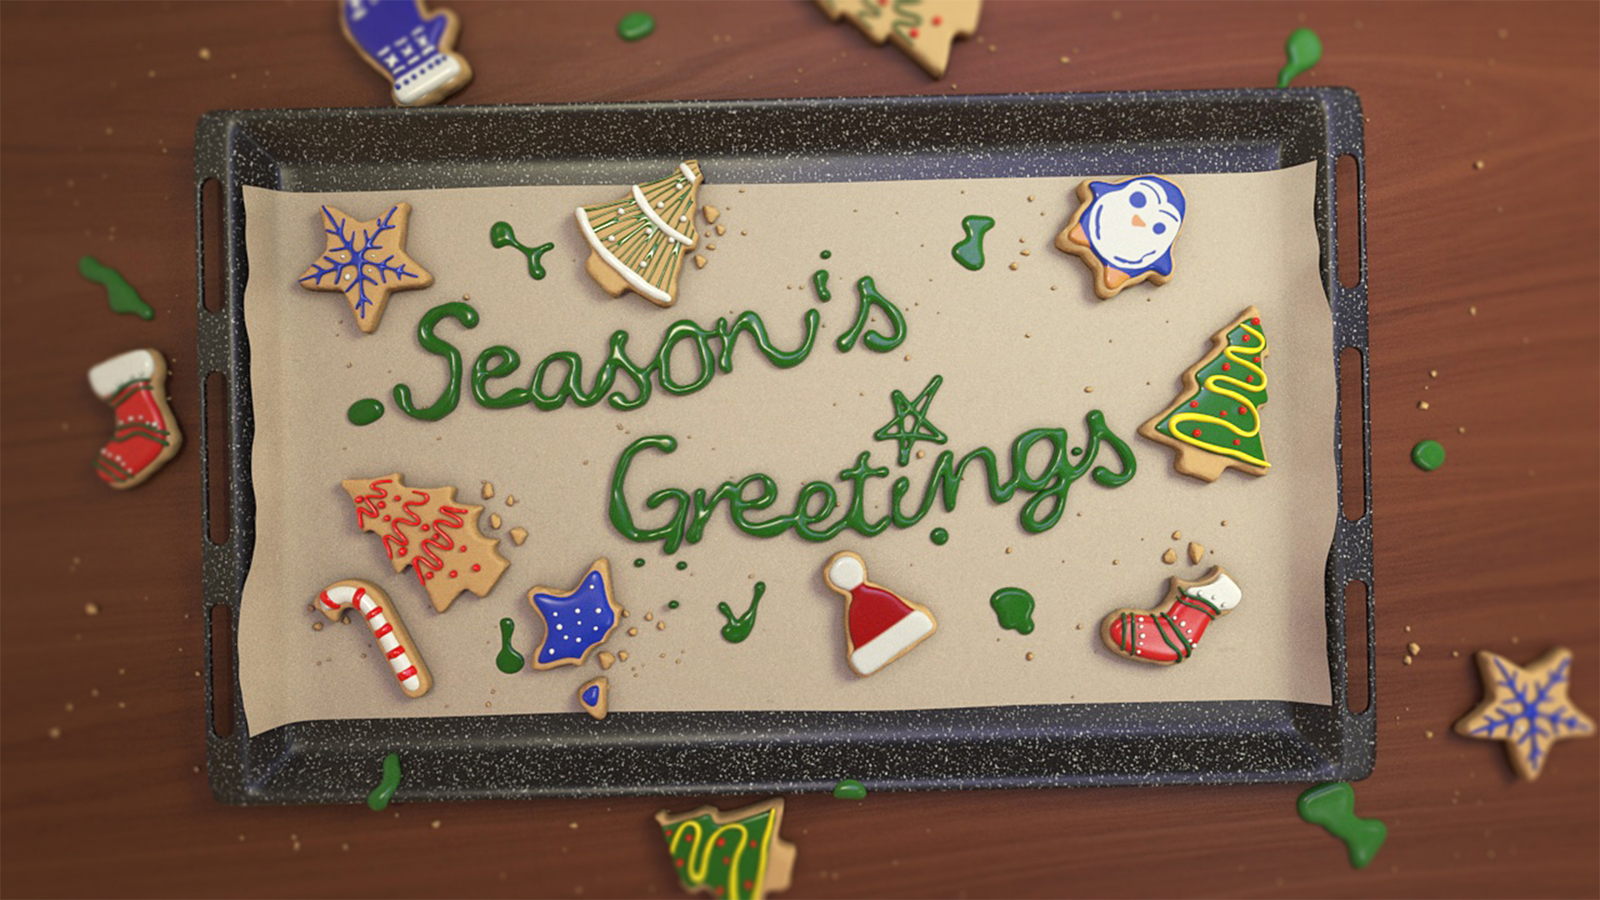 Colour still of baking tray from animation with biscuits iced, drops of icing around the tray and the lettering 'seasons greetings' on baking parchment, surrounded by the biscuits on the tray